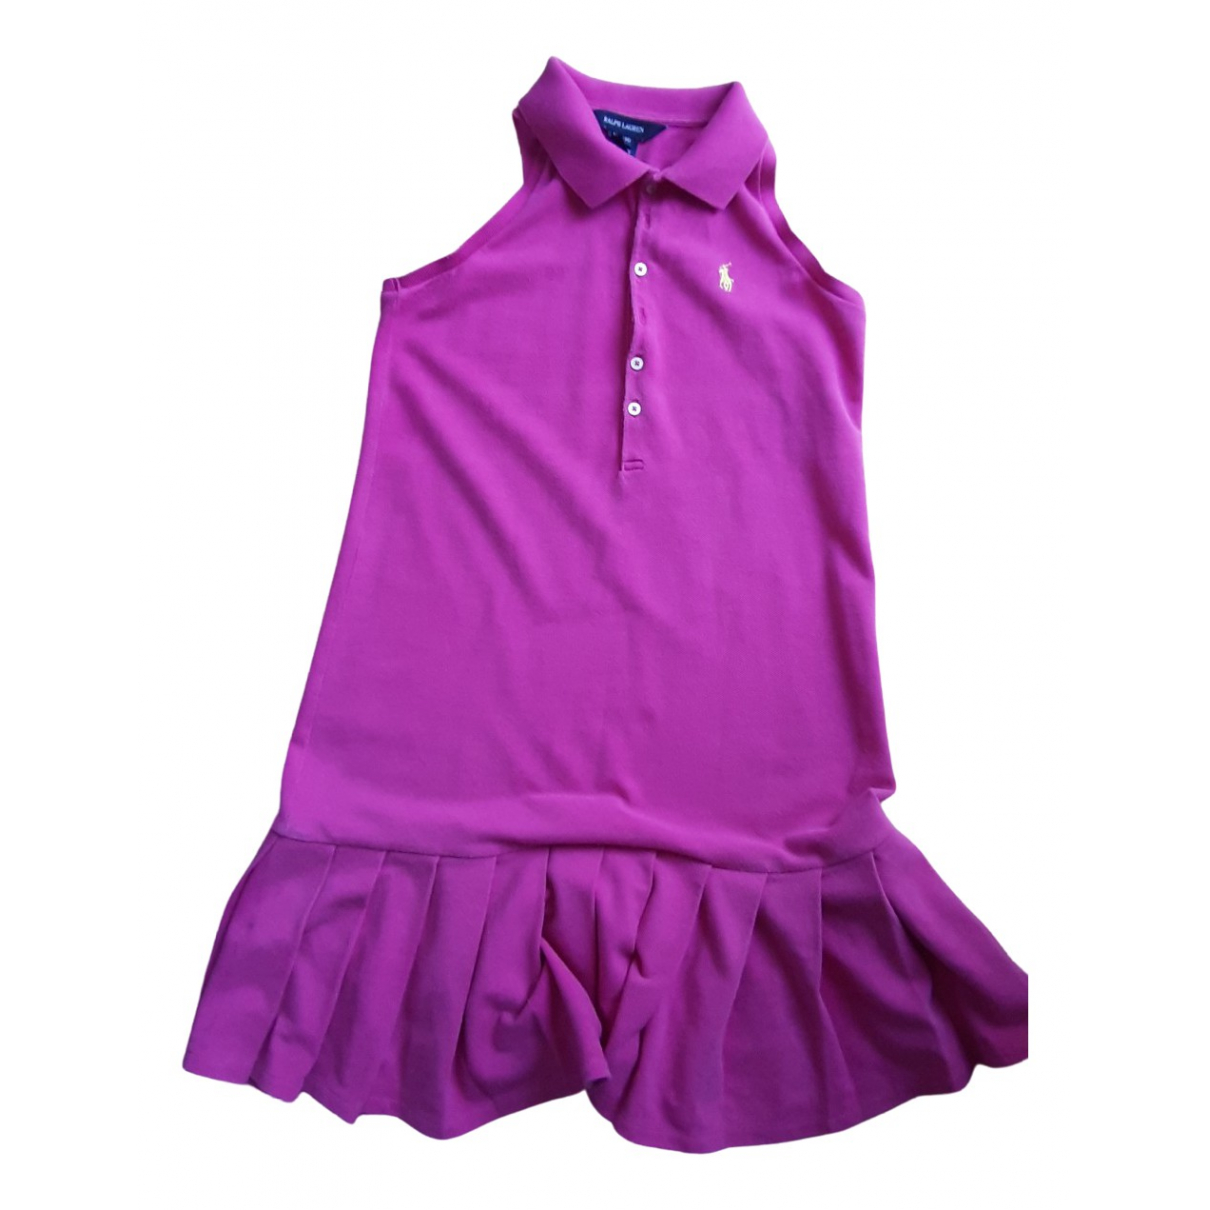 Ralph Lauren N Pink Cotton dress for Kids 12 years - XS FR